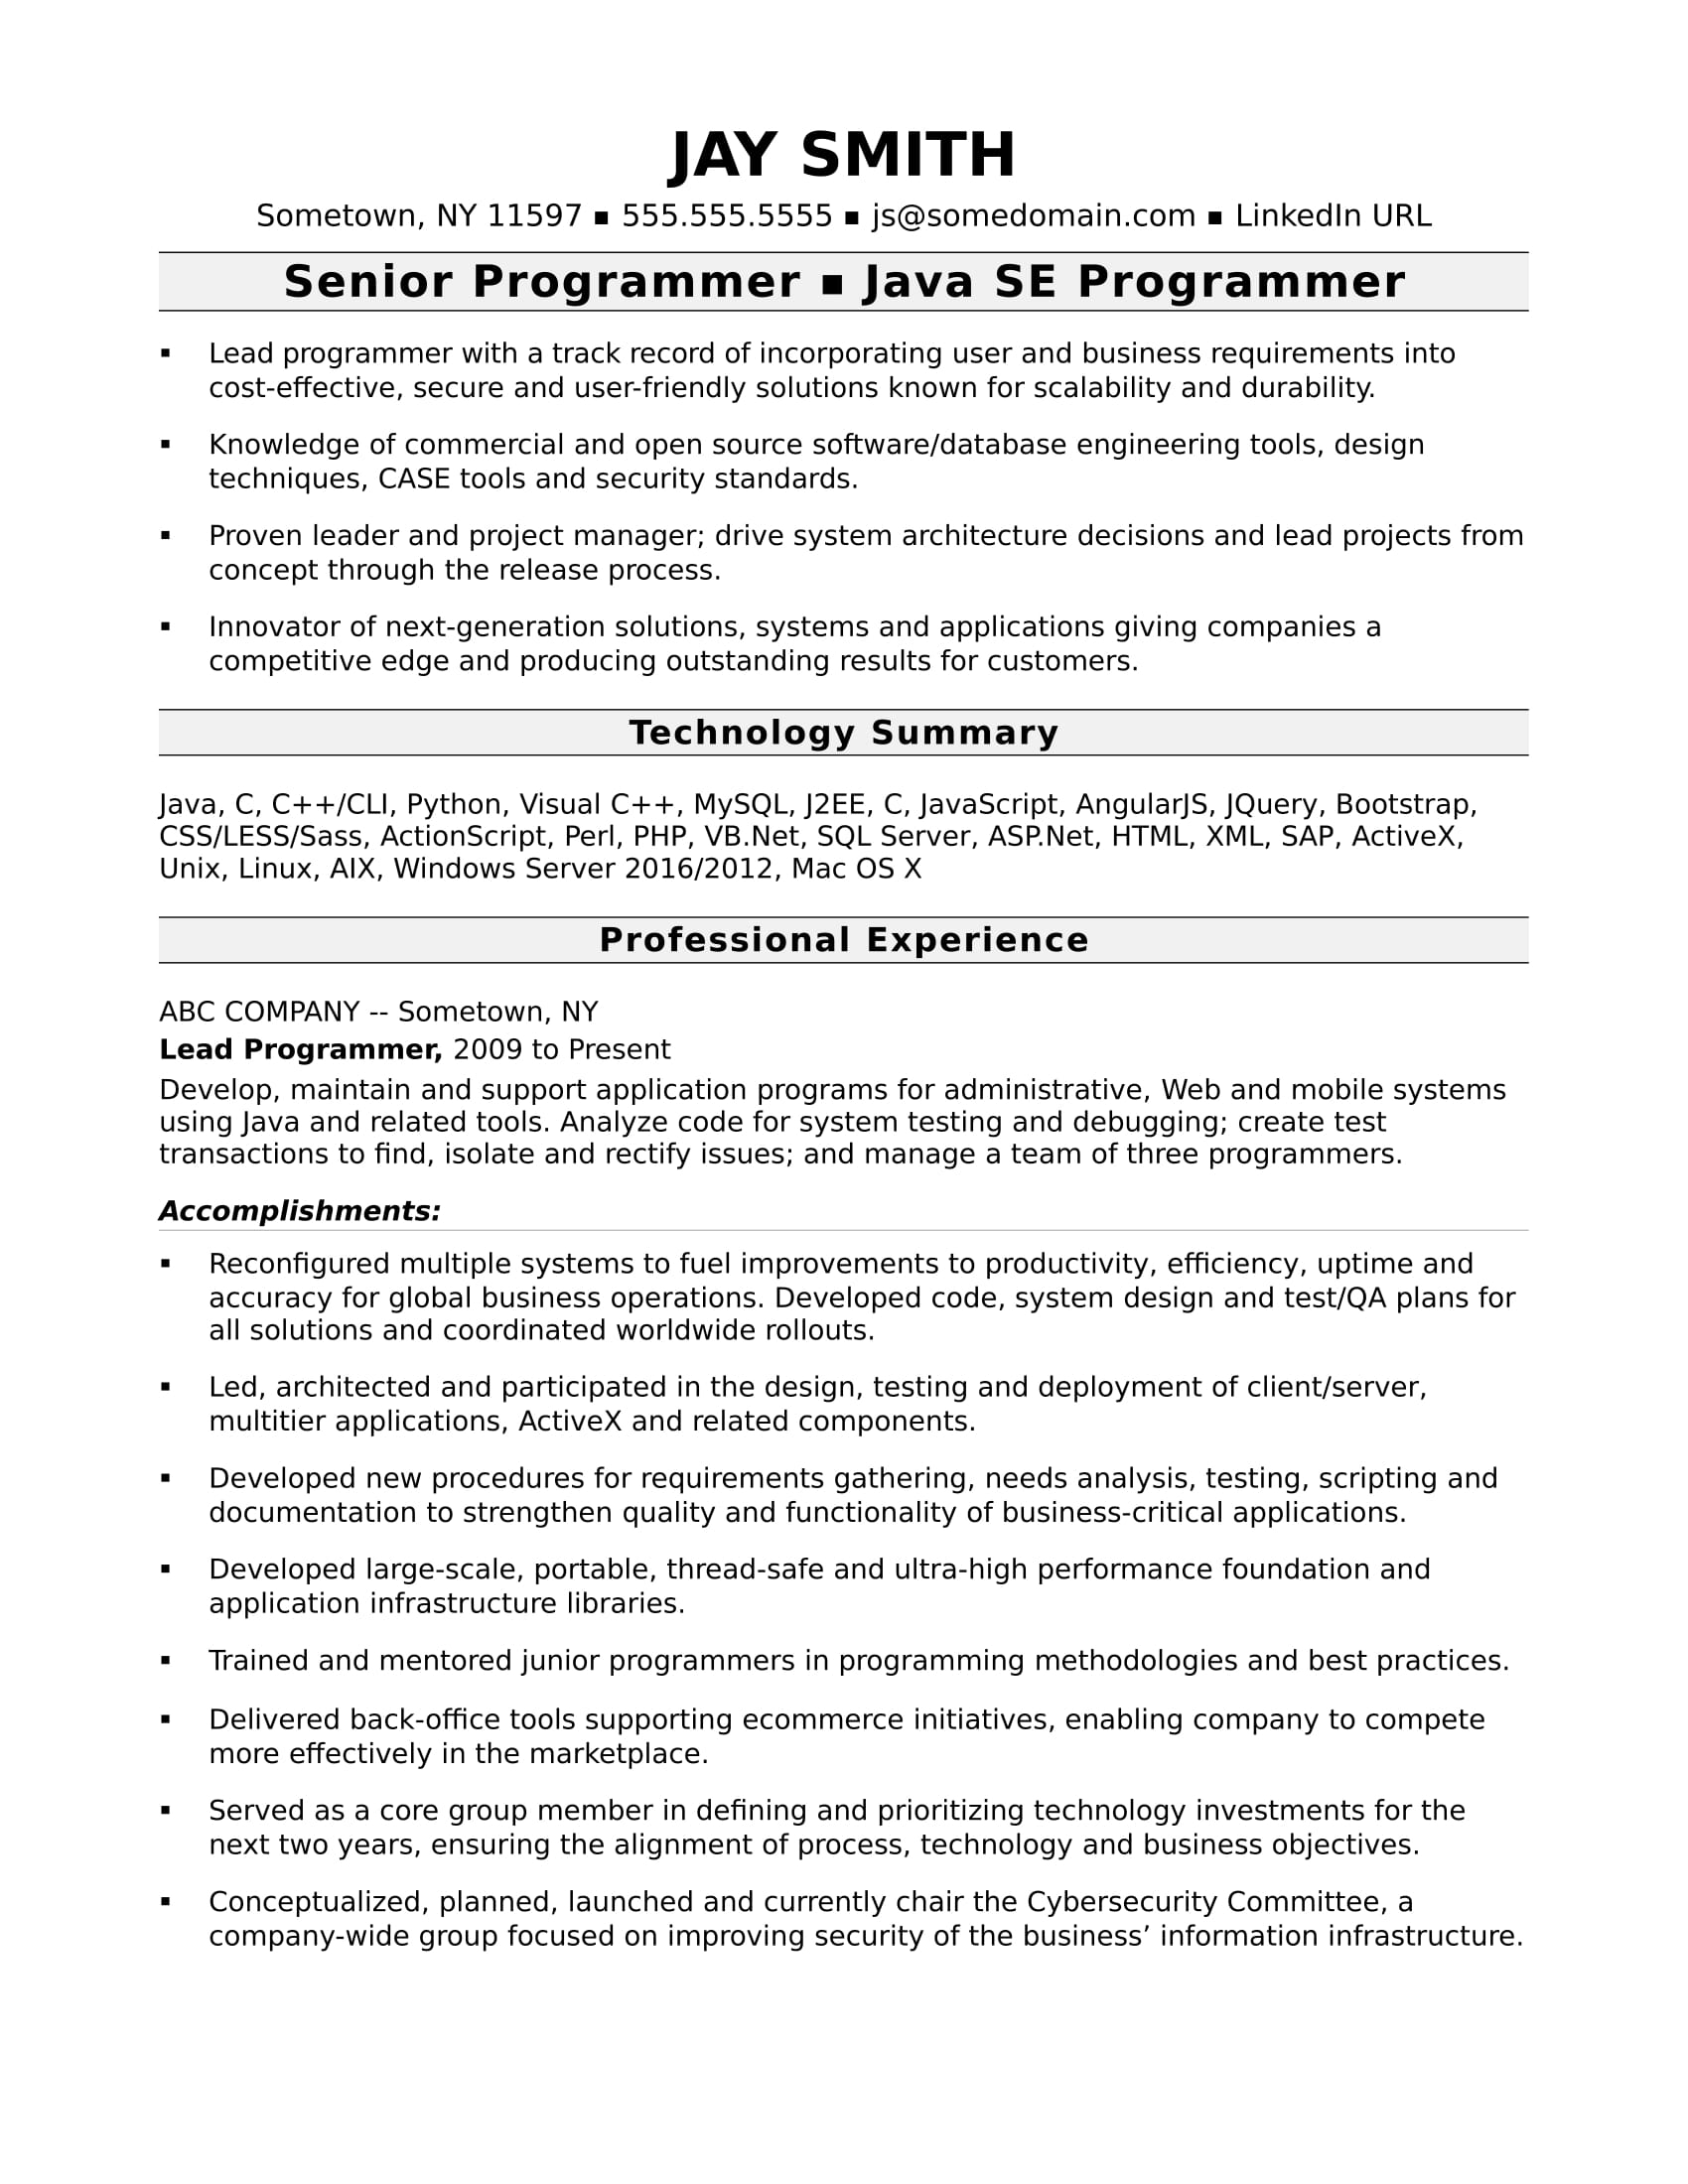 sample resume for an experienced computer programmer - Programmer Resume Sample